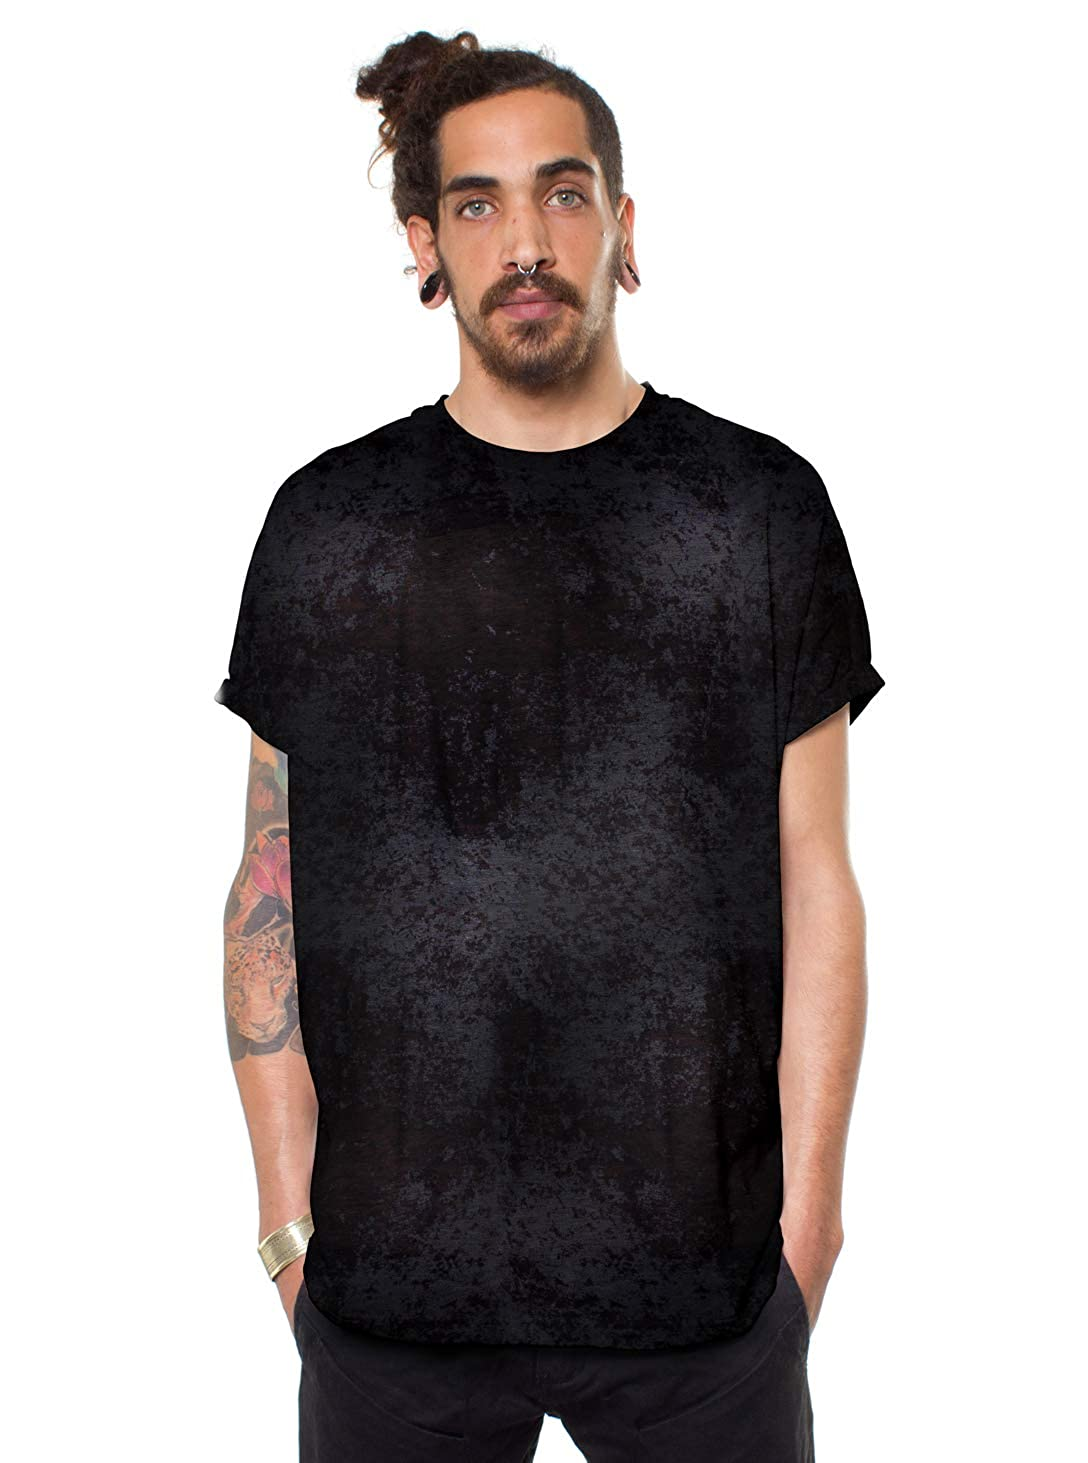 Acis Wash Dark Grey Street Habit Mens Camouflage Baggy Boxy T-Shirt Thin Lightweight Unique Black Going Out Top